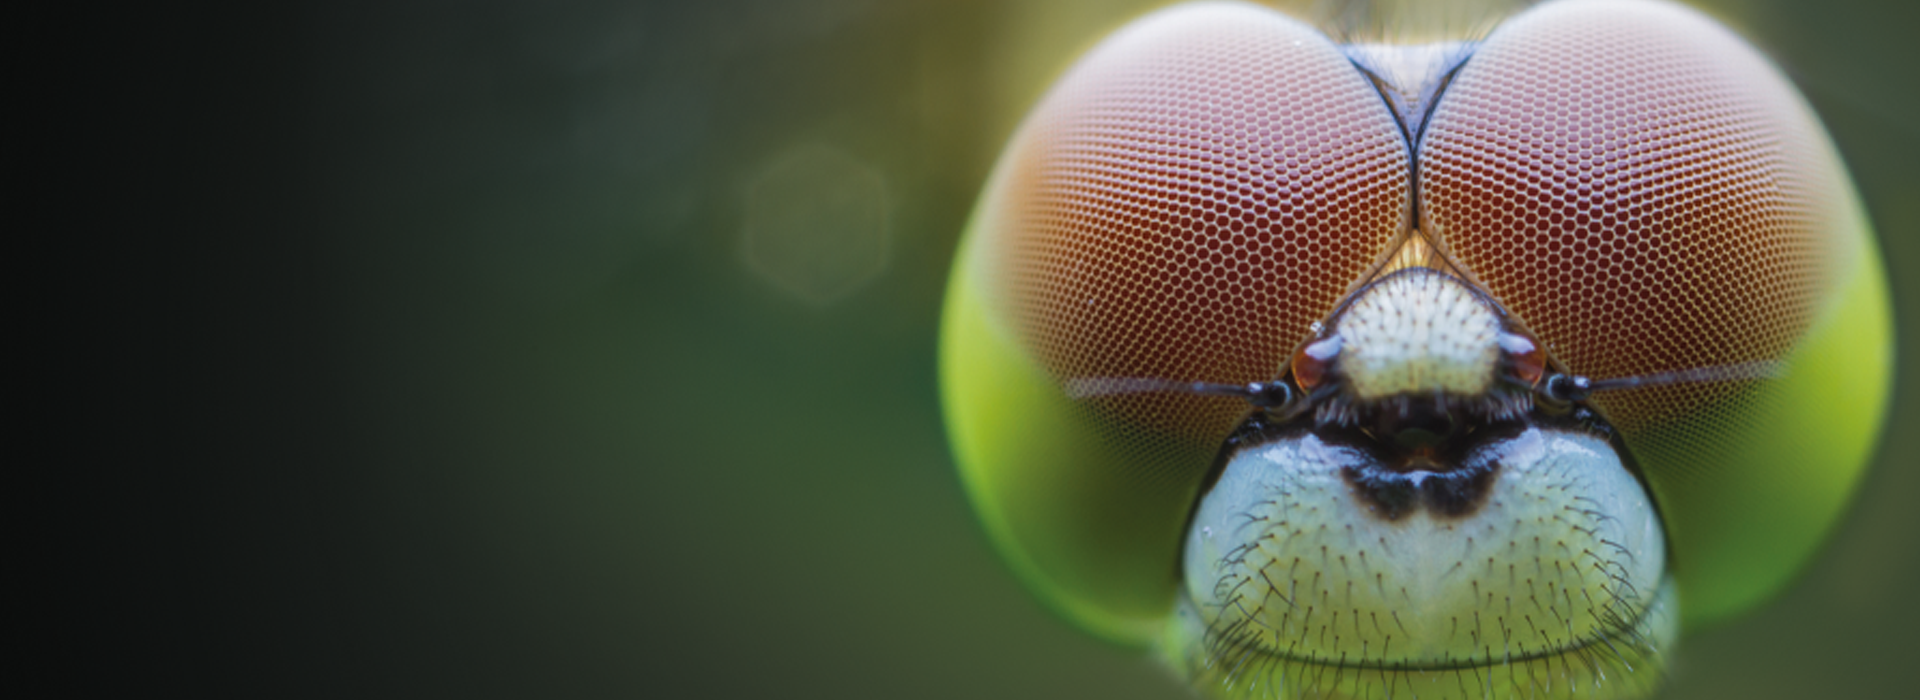 dragonfly header.png